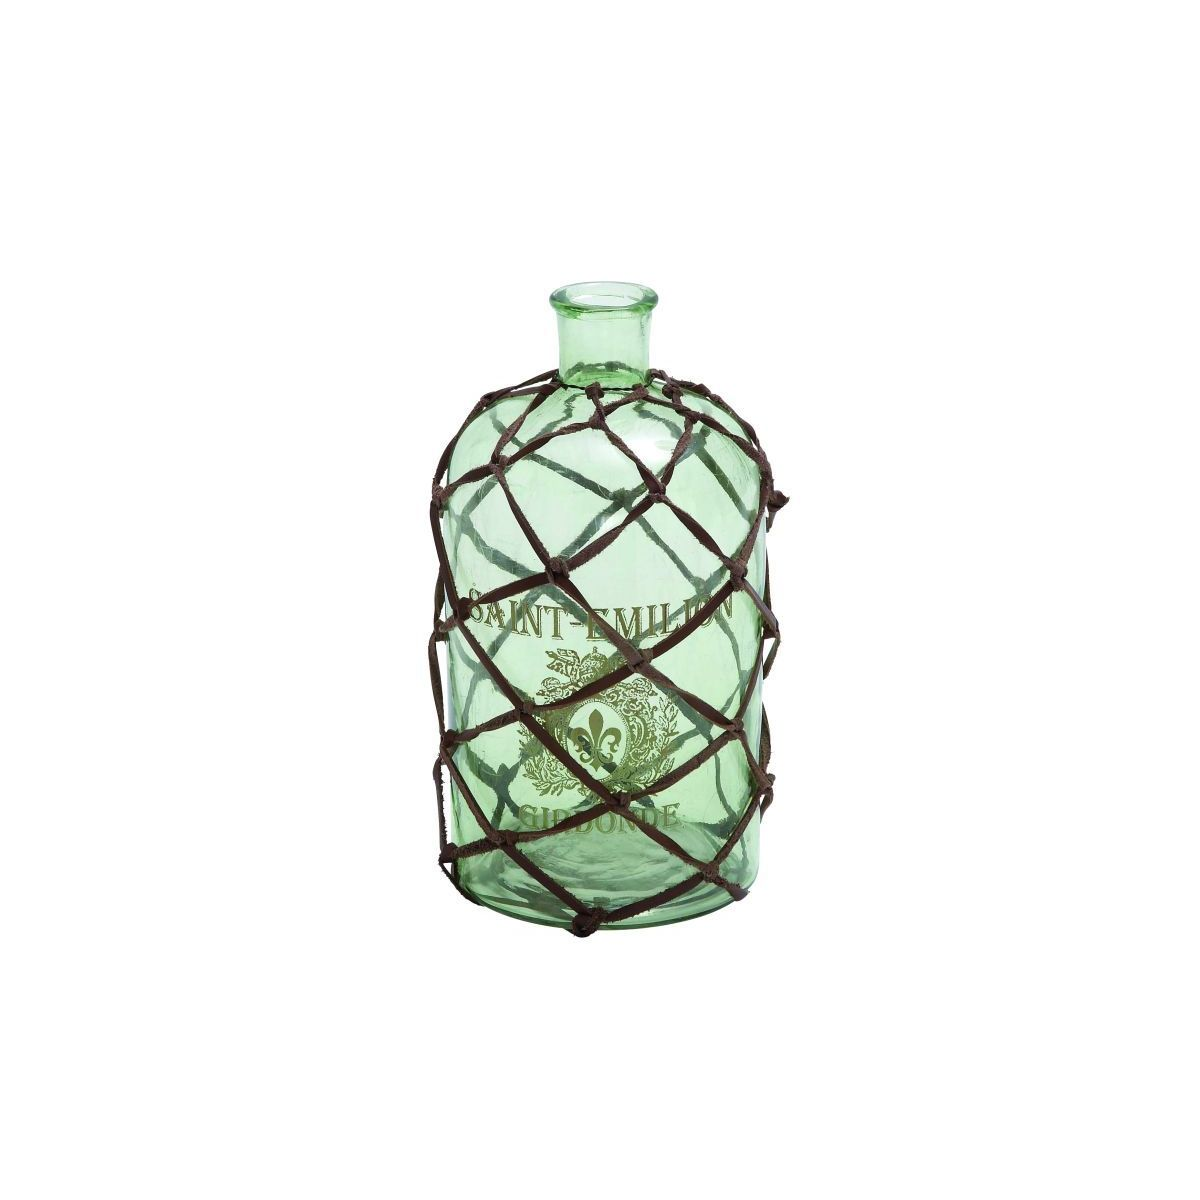 Glass Leather 6-inches Wide x 10-inches High Bottle Vase (GLASS LTHR BOTTLE VASE 6W, 10H)